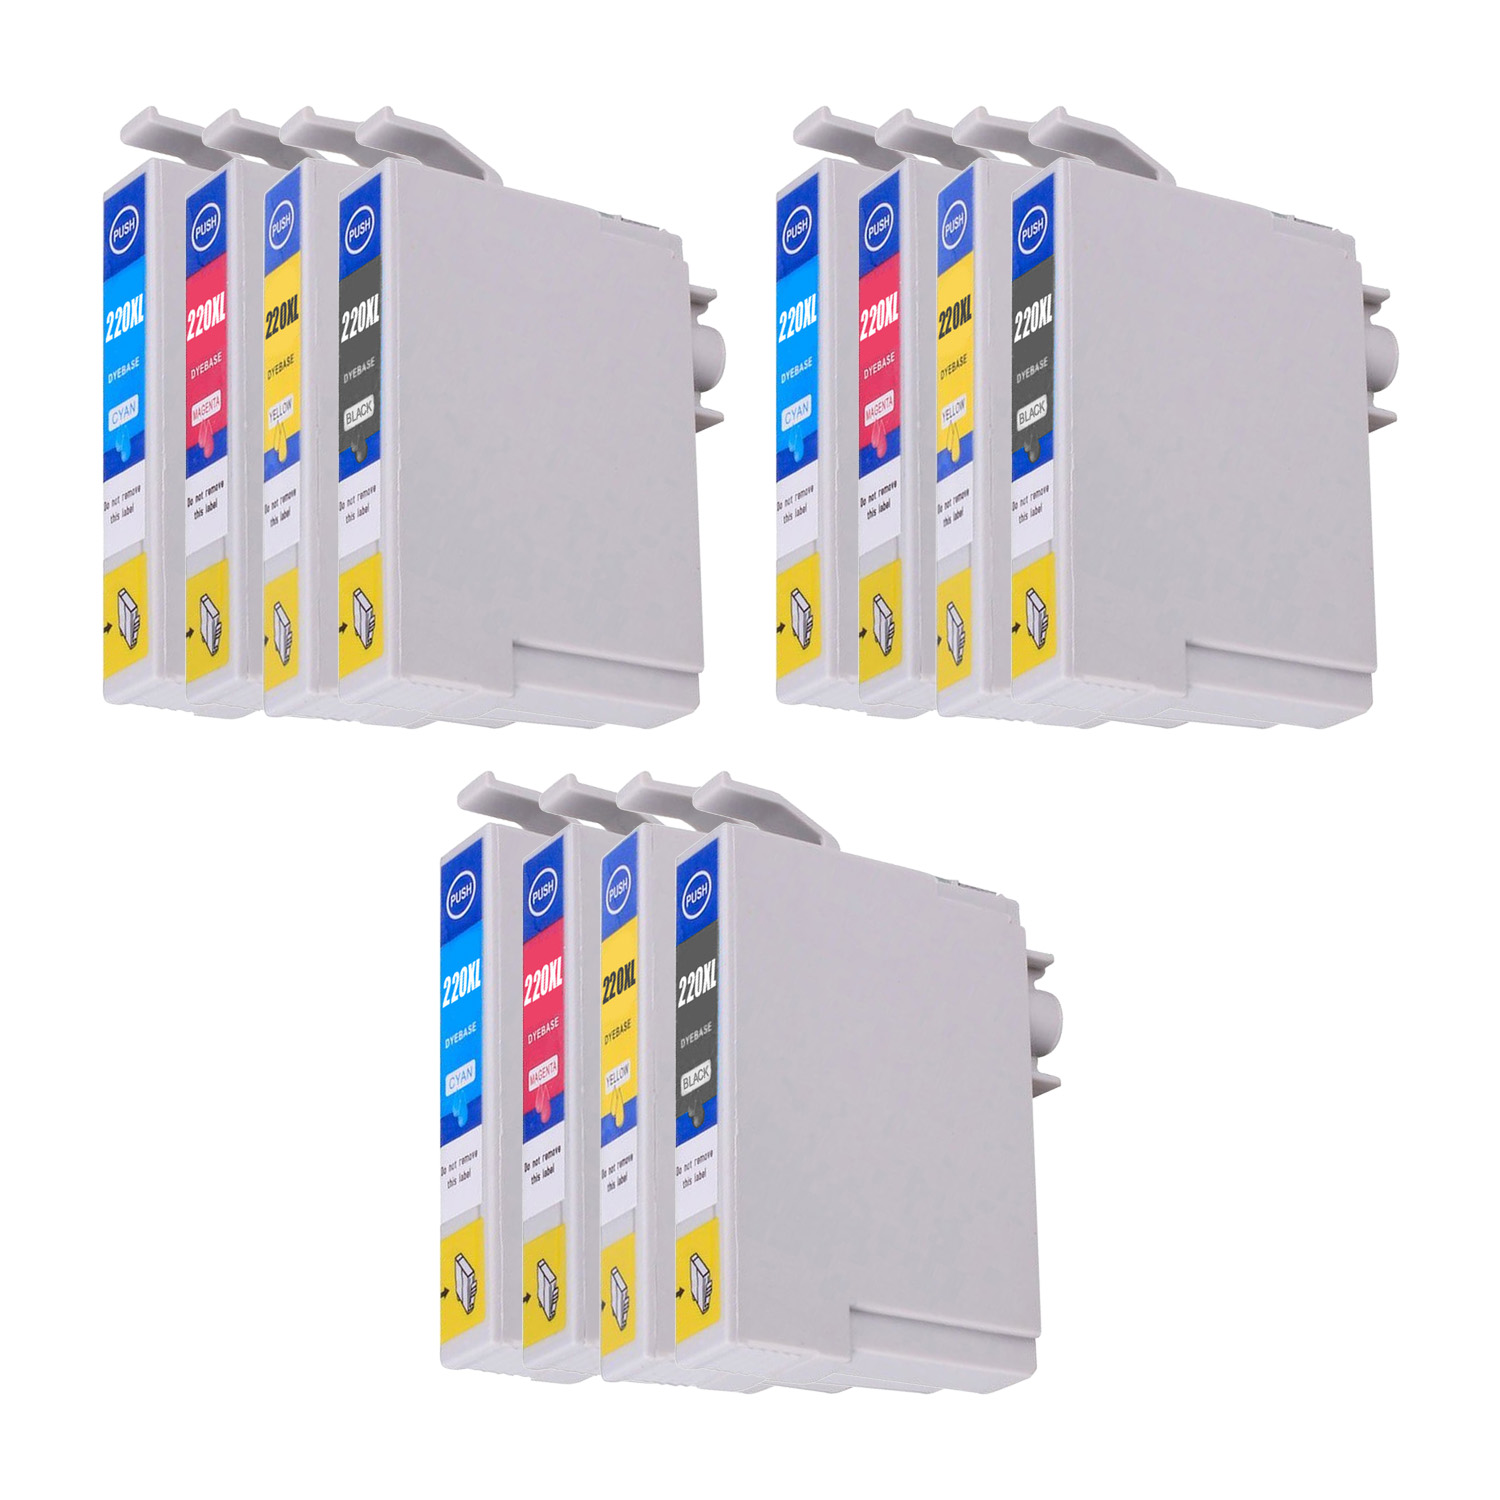 Remanufactured Epson 220XL Inkjet High Capacity Pack - 12 Cartridges